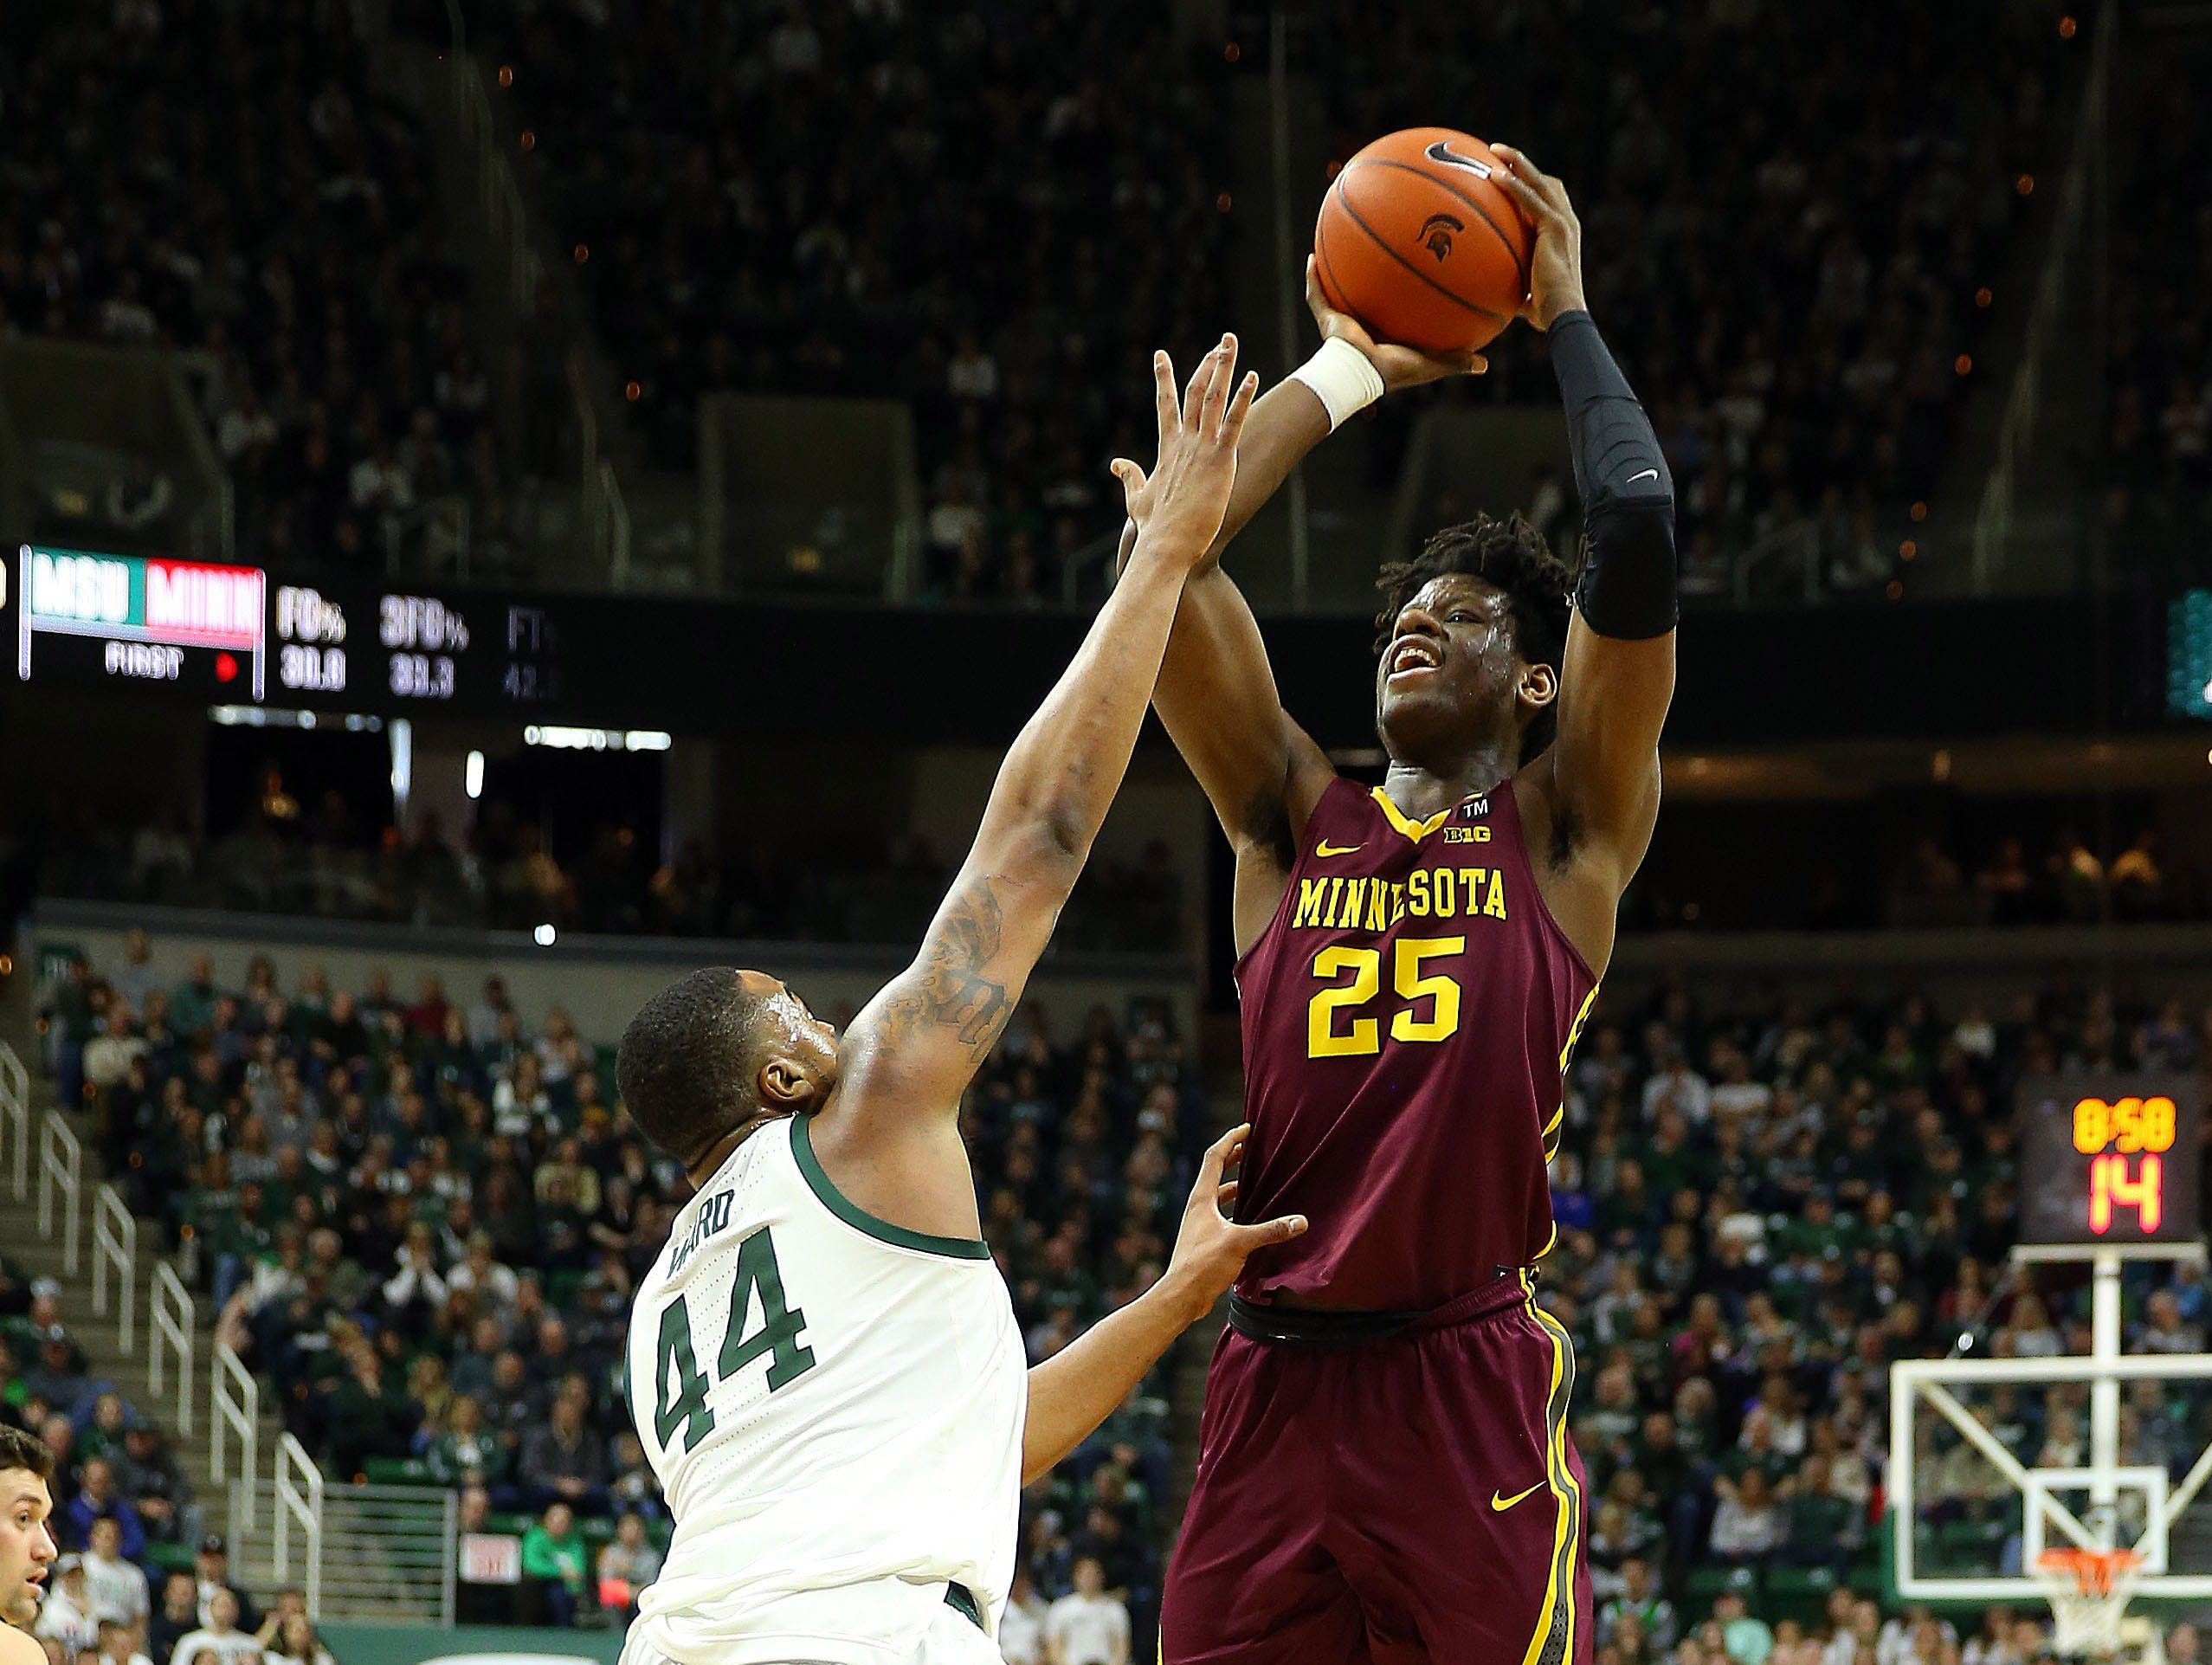 Feb 9, 2019; East Lansing, MI, USA; Minnesota Golden Gophers center Daniel Oturu (25) shoots over Michigan State Spartans forward Nick Ward (44) during the first half at the Breslin Center. Mandatory Credit: Mike Carter-USA TODAY Sports